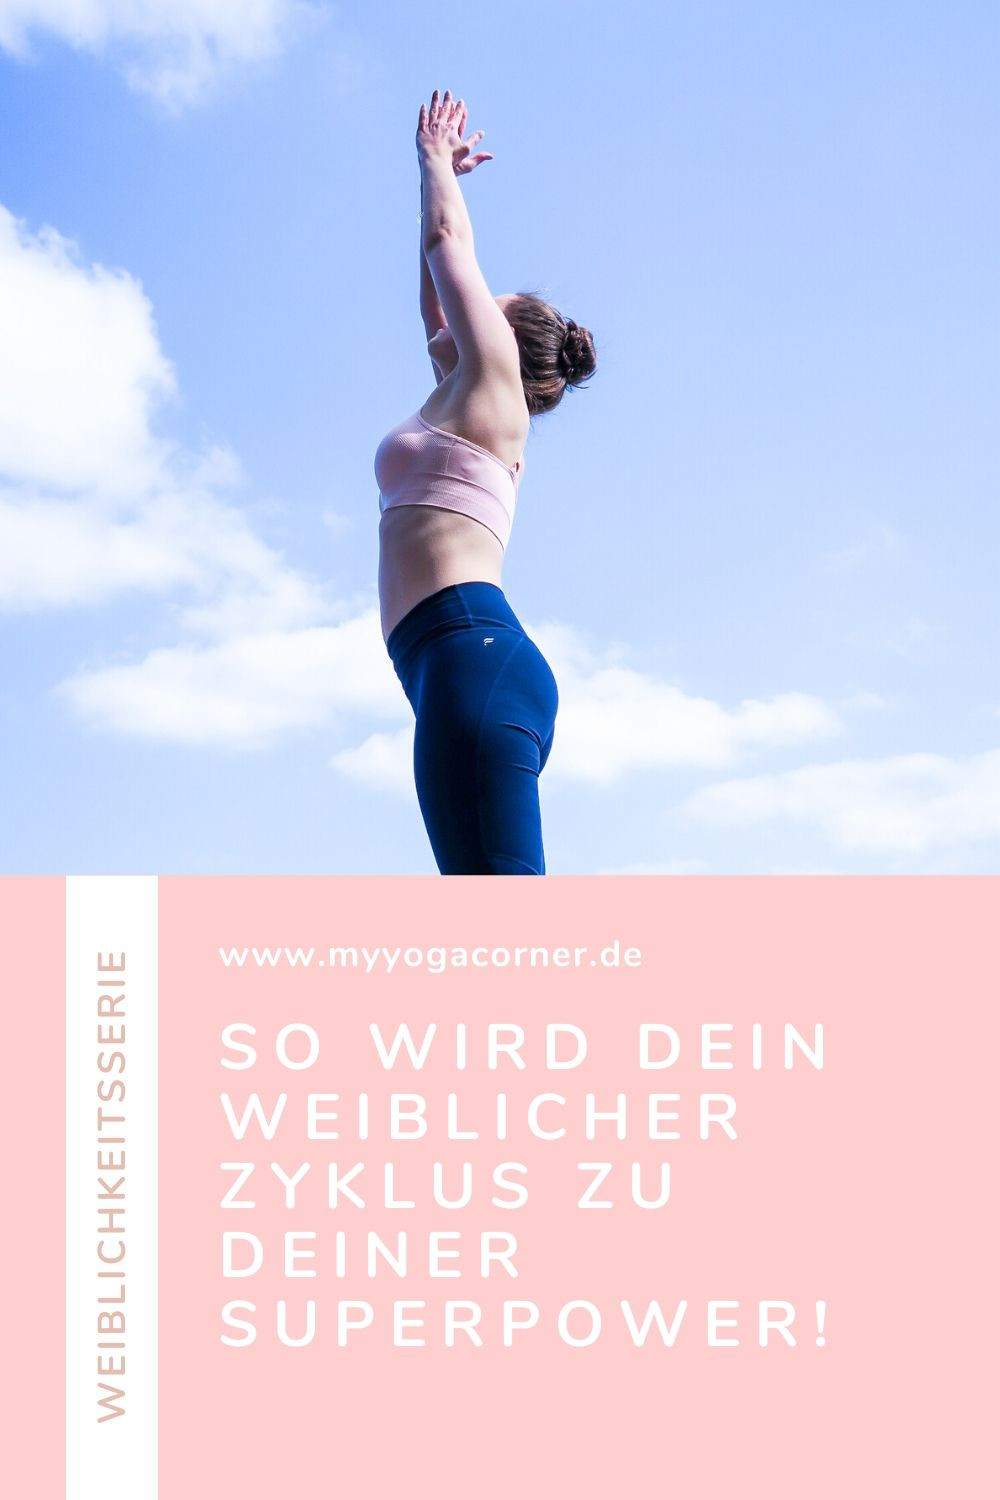 So wird dein weiblicher Zyklus zu deiner Superpower!  #weiblichkeit #zyklus #cycle #syncing #menstruation #luteal #ovulation #follicular #food #workout #rpoductivity #love #beging #woman #selfcare